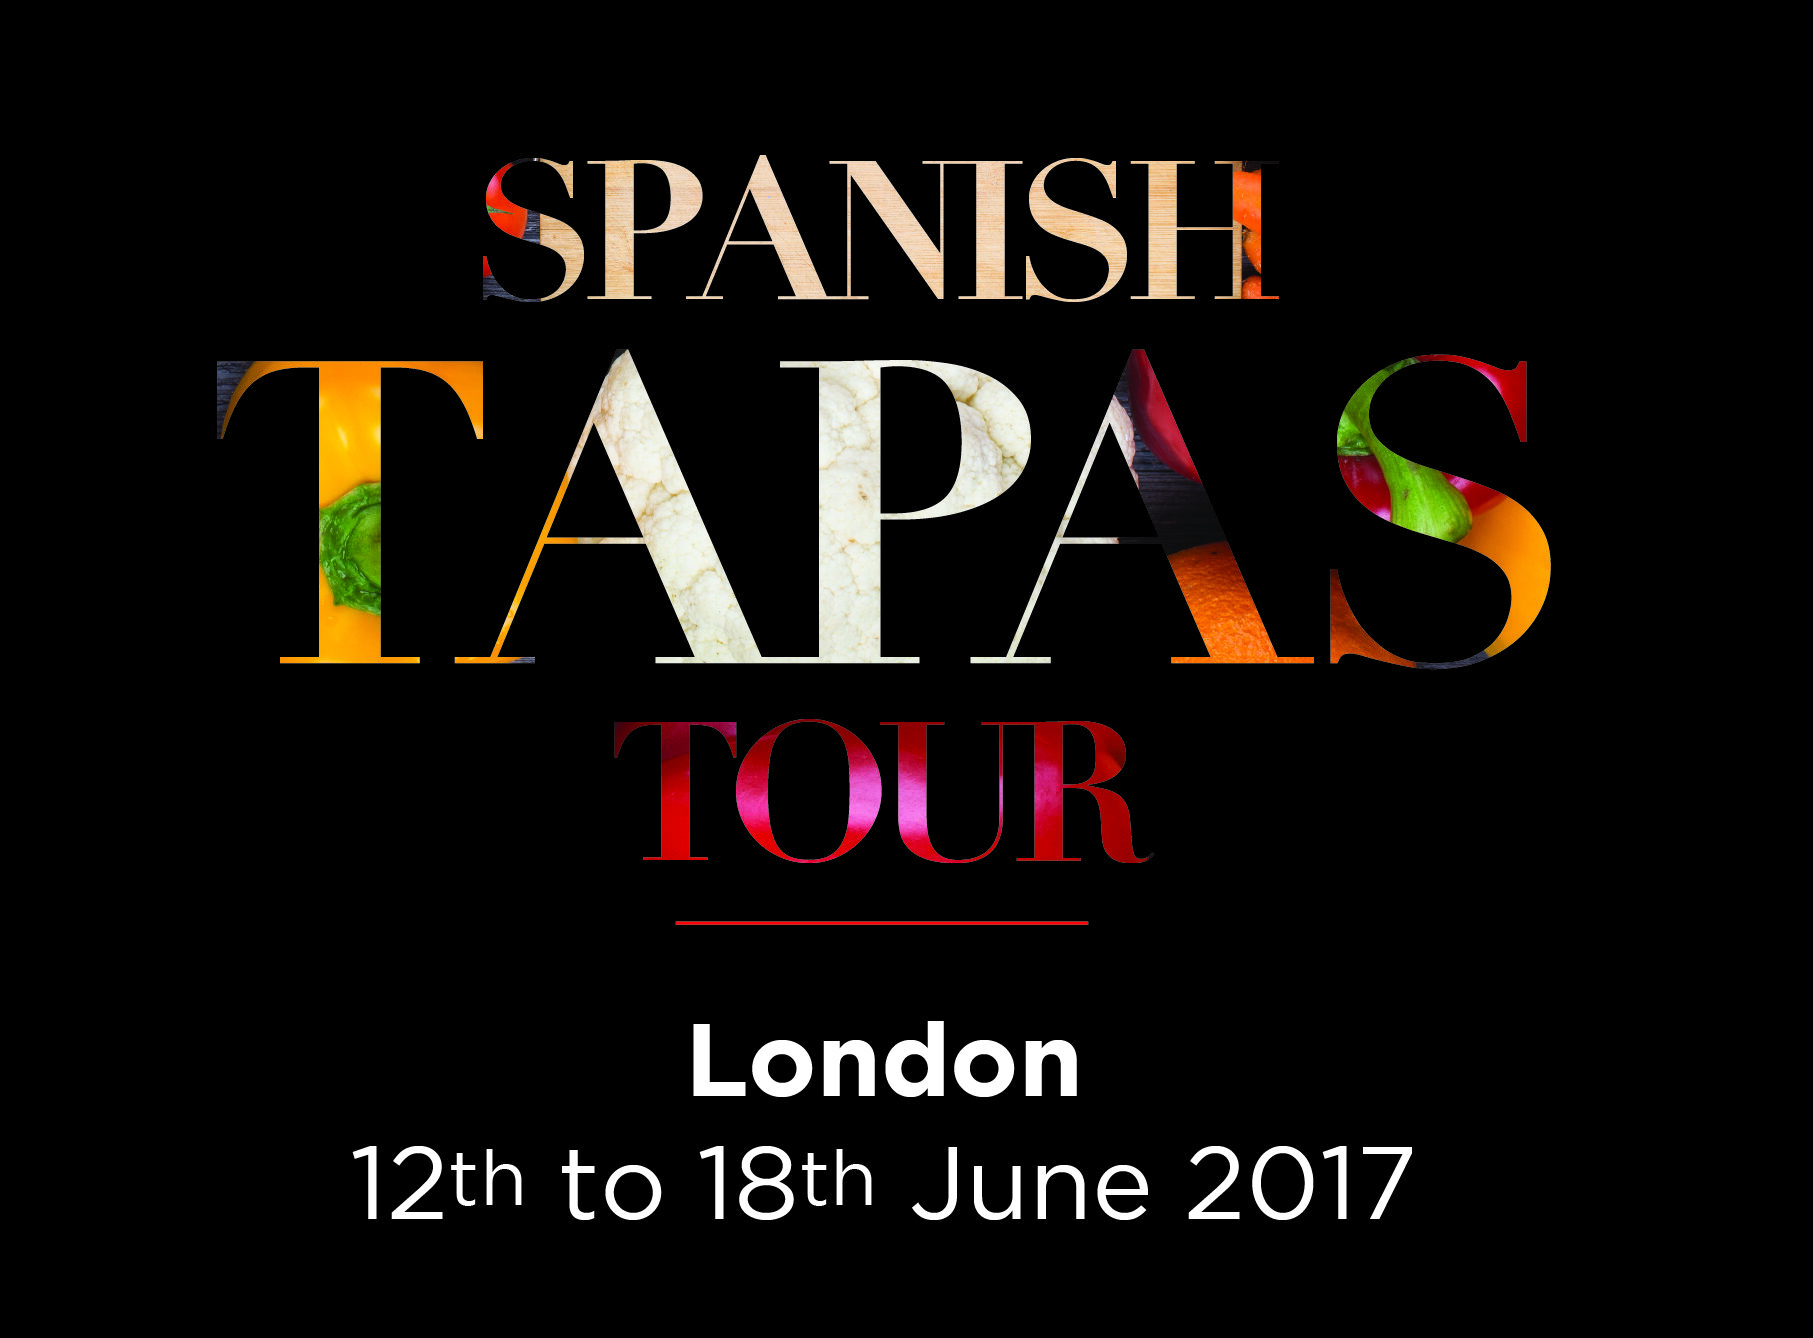 Spanish Tapas Tour 2017